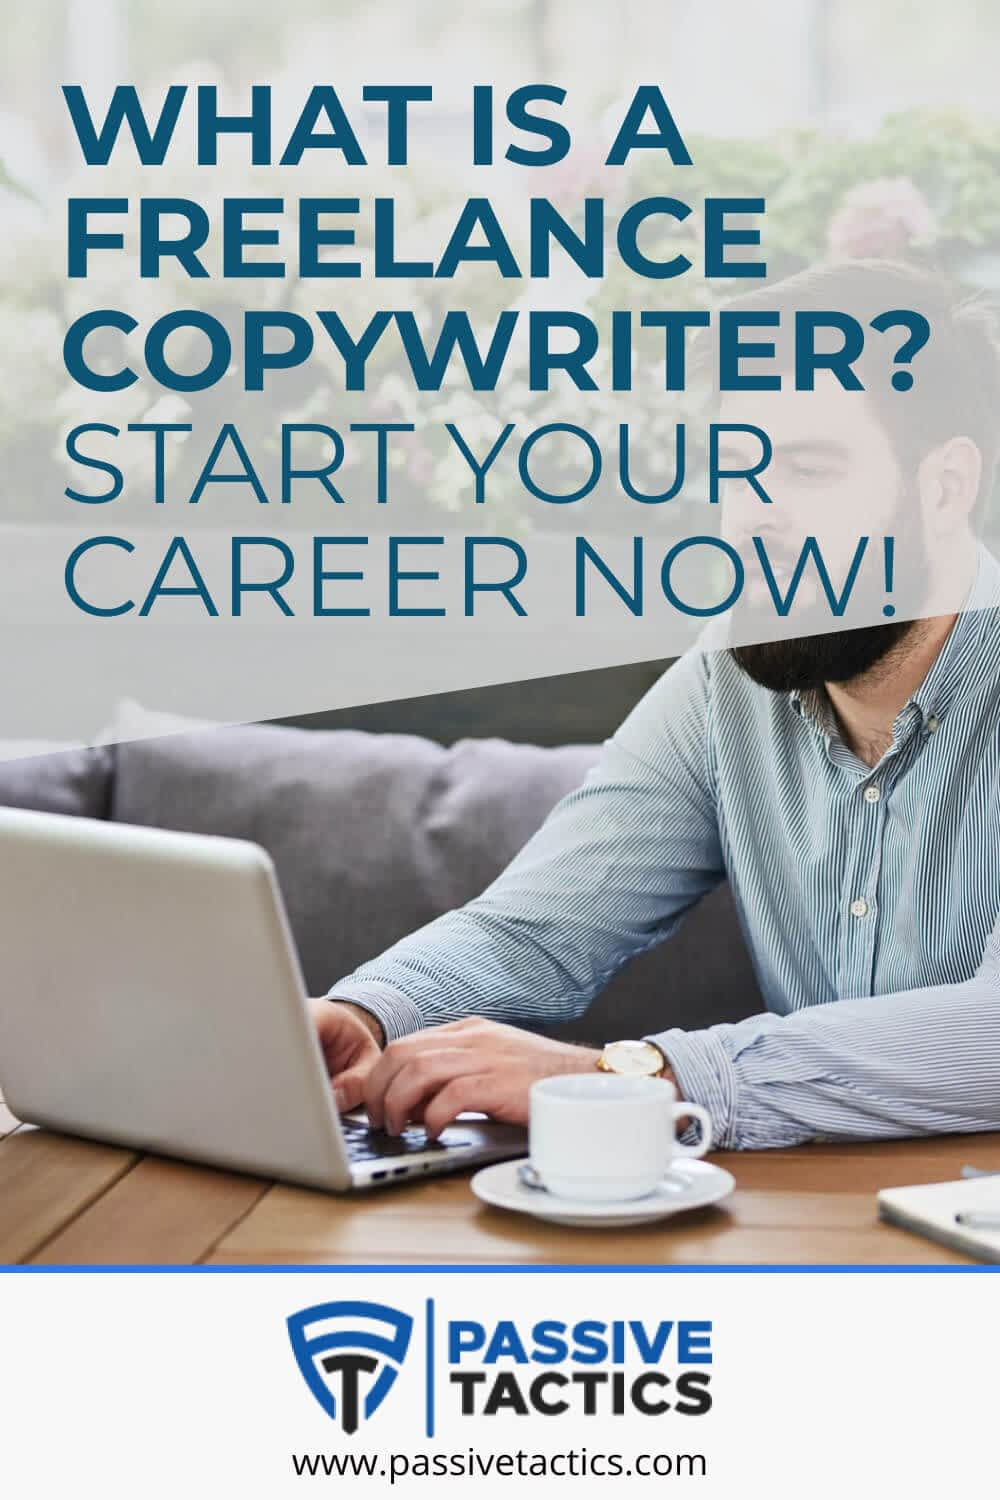 What Is A Freelance Copywriter? Start Your Career Now!